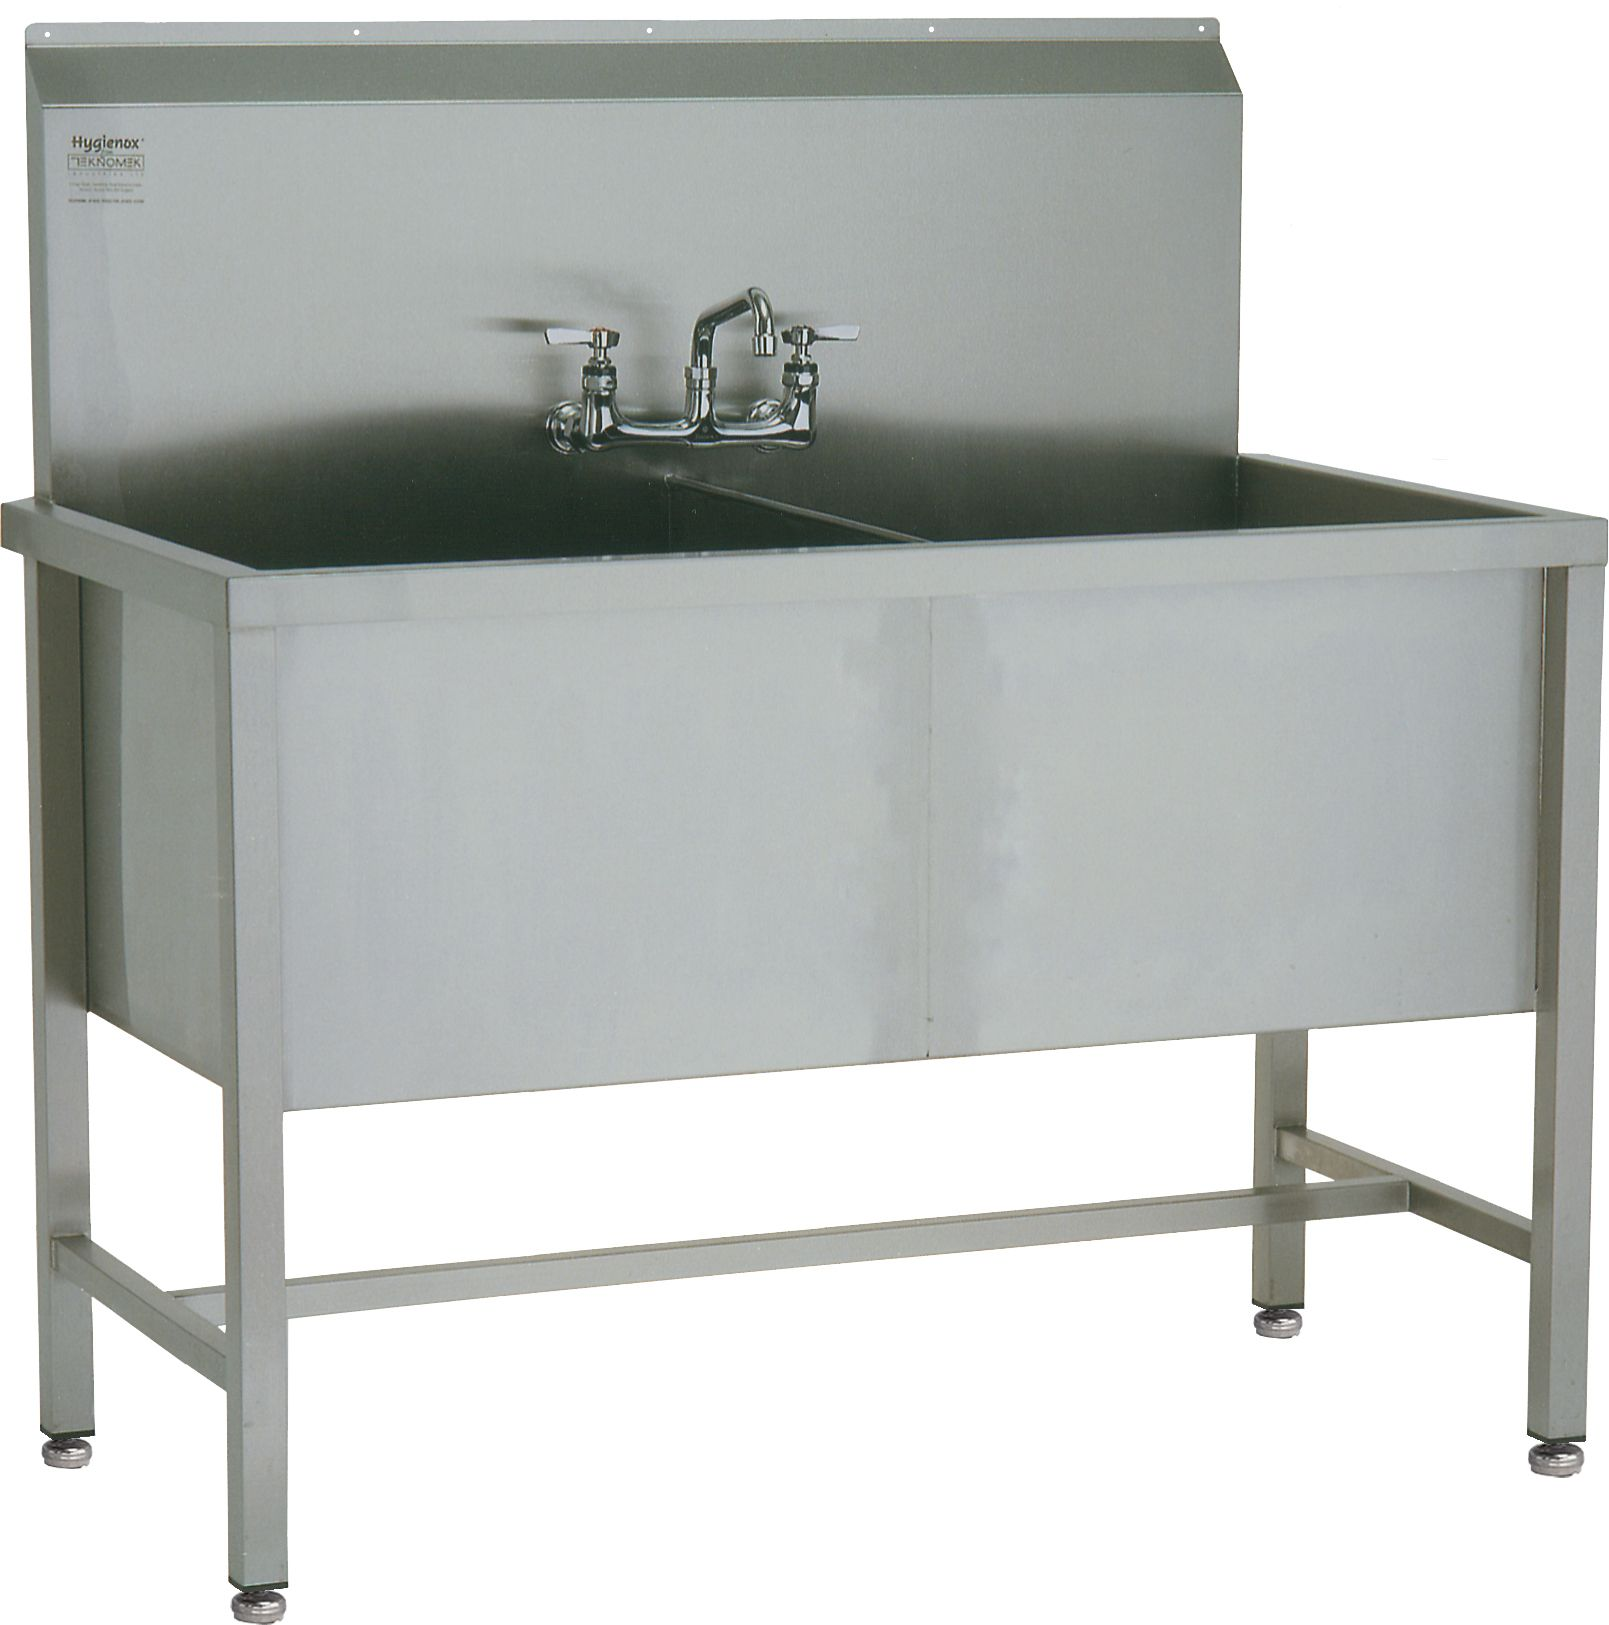 GBP800 Stainless Steel Utility / Belfast Sinks (Double